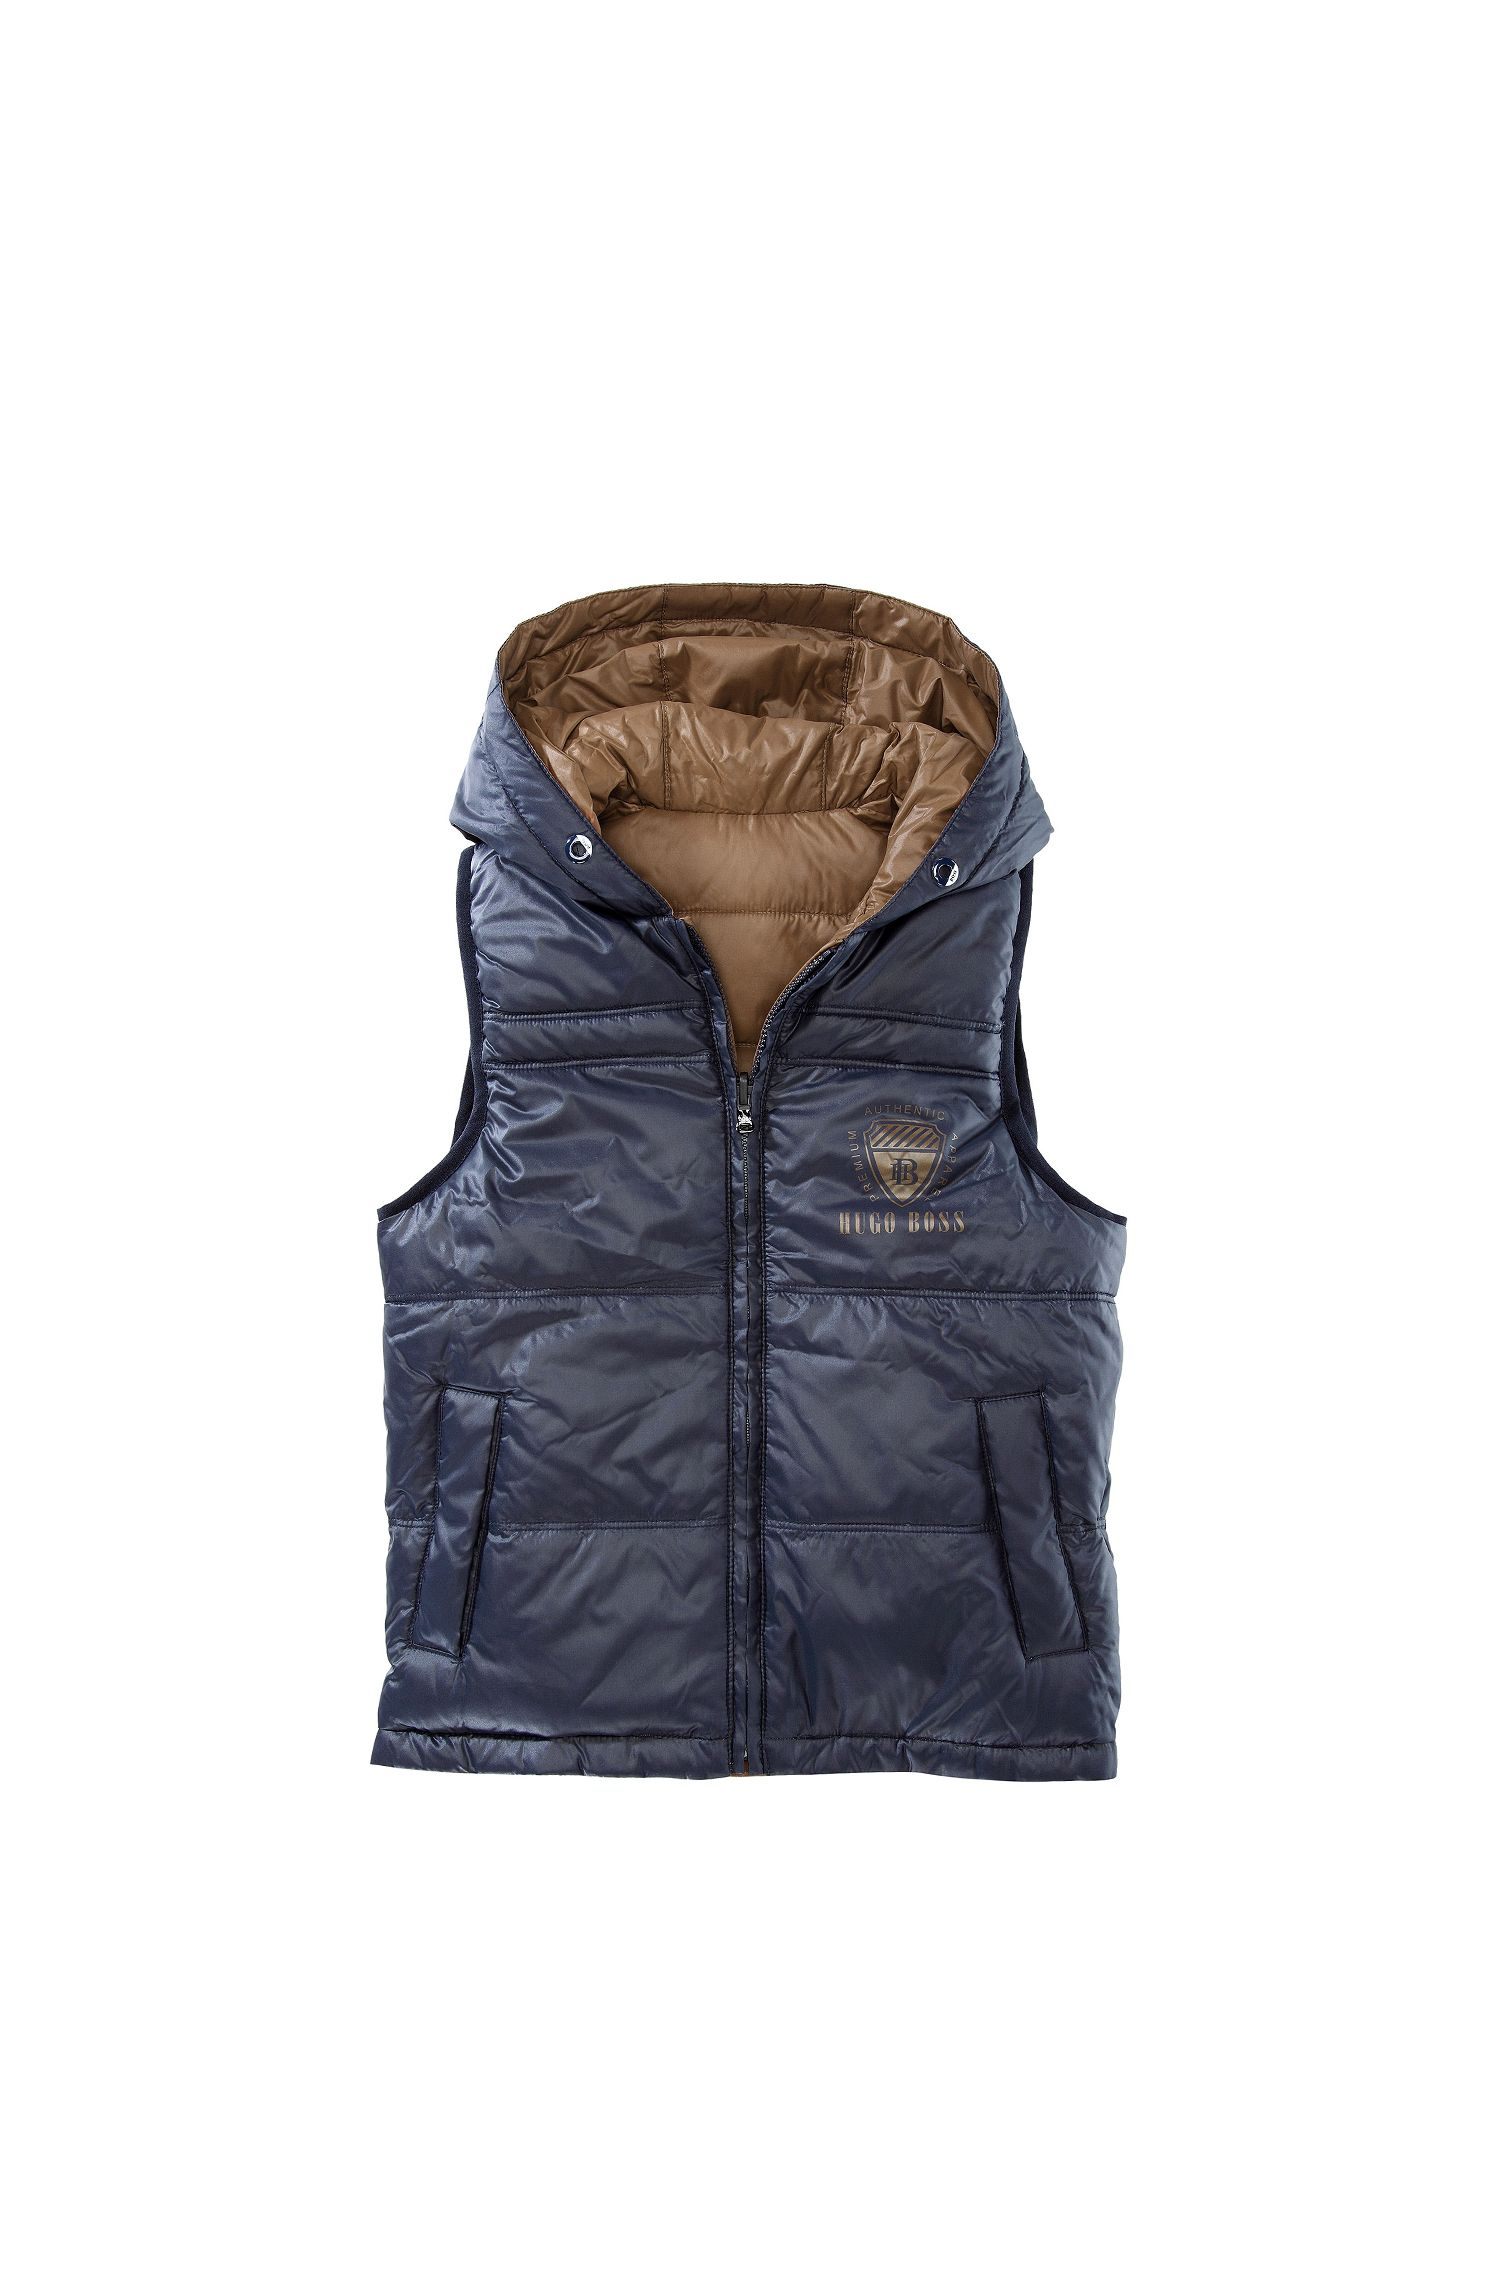 'J26168' | Boys Nylon Reversible Quilted Down Vest